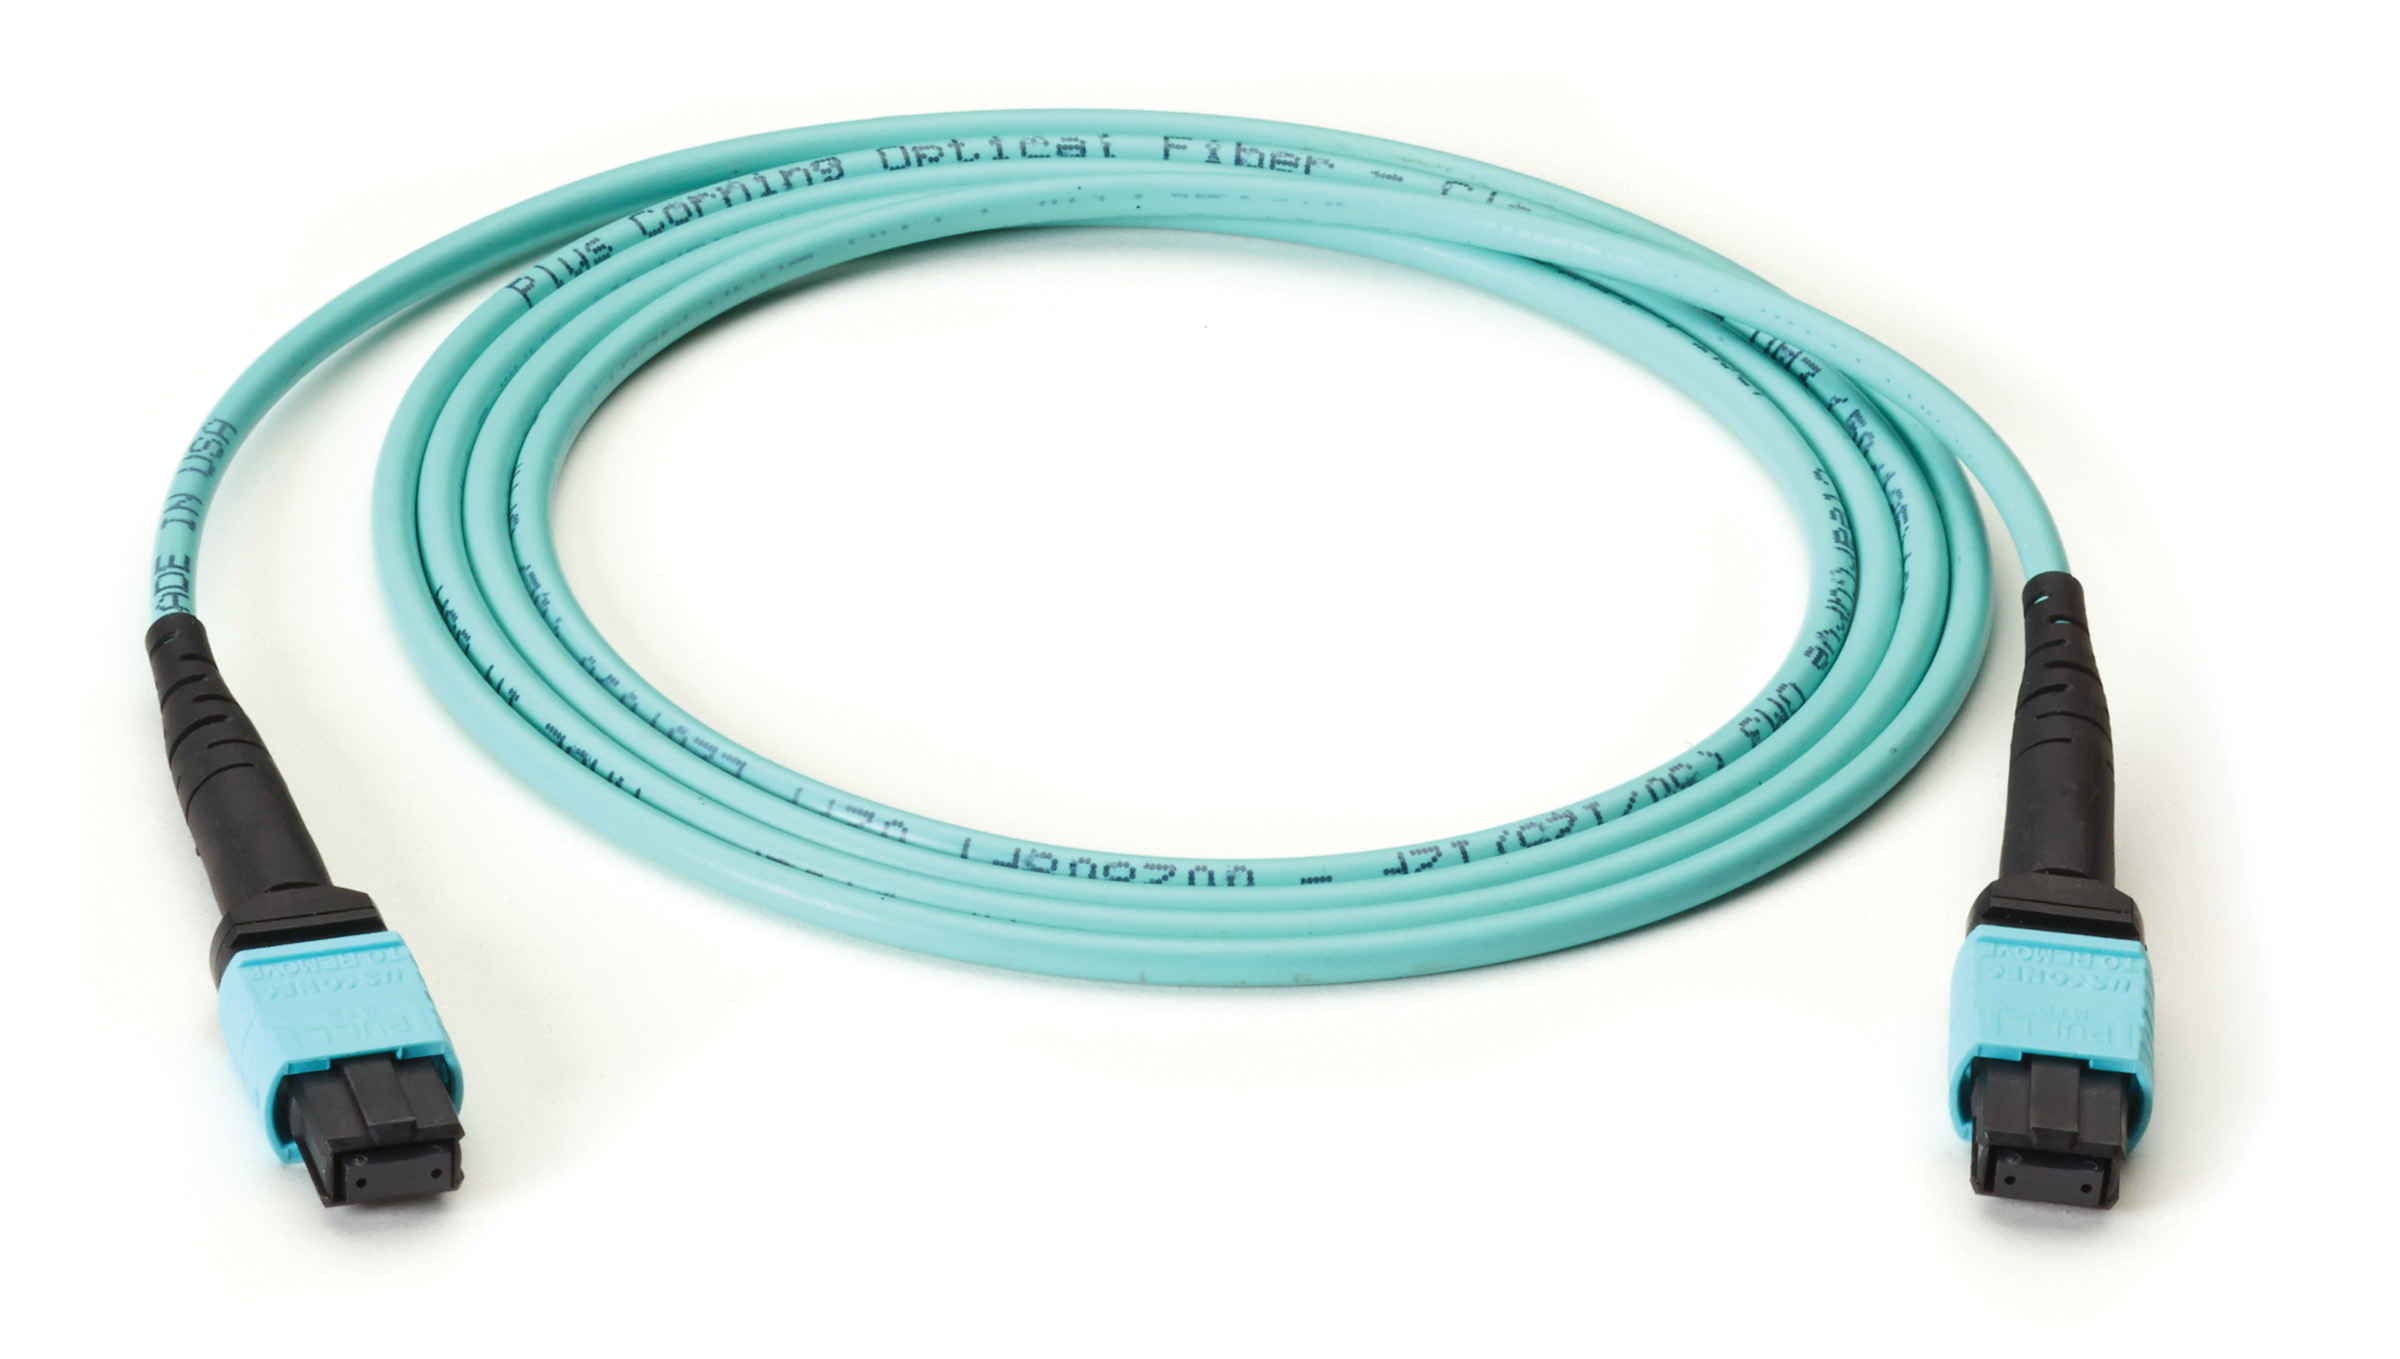 MTP OM3 Trunk Cable, MTP Trunk Cable, MTP Fiber Optic Cable, Trunk ...